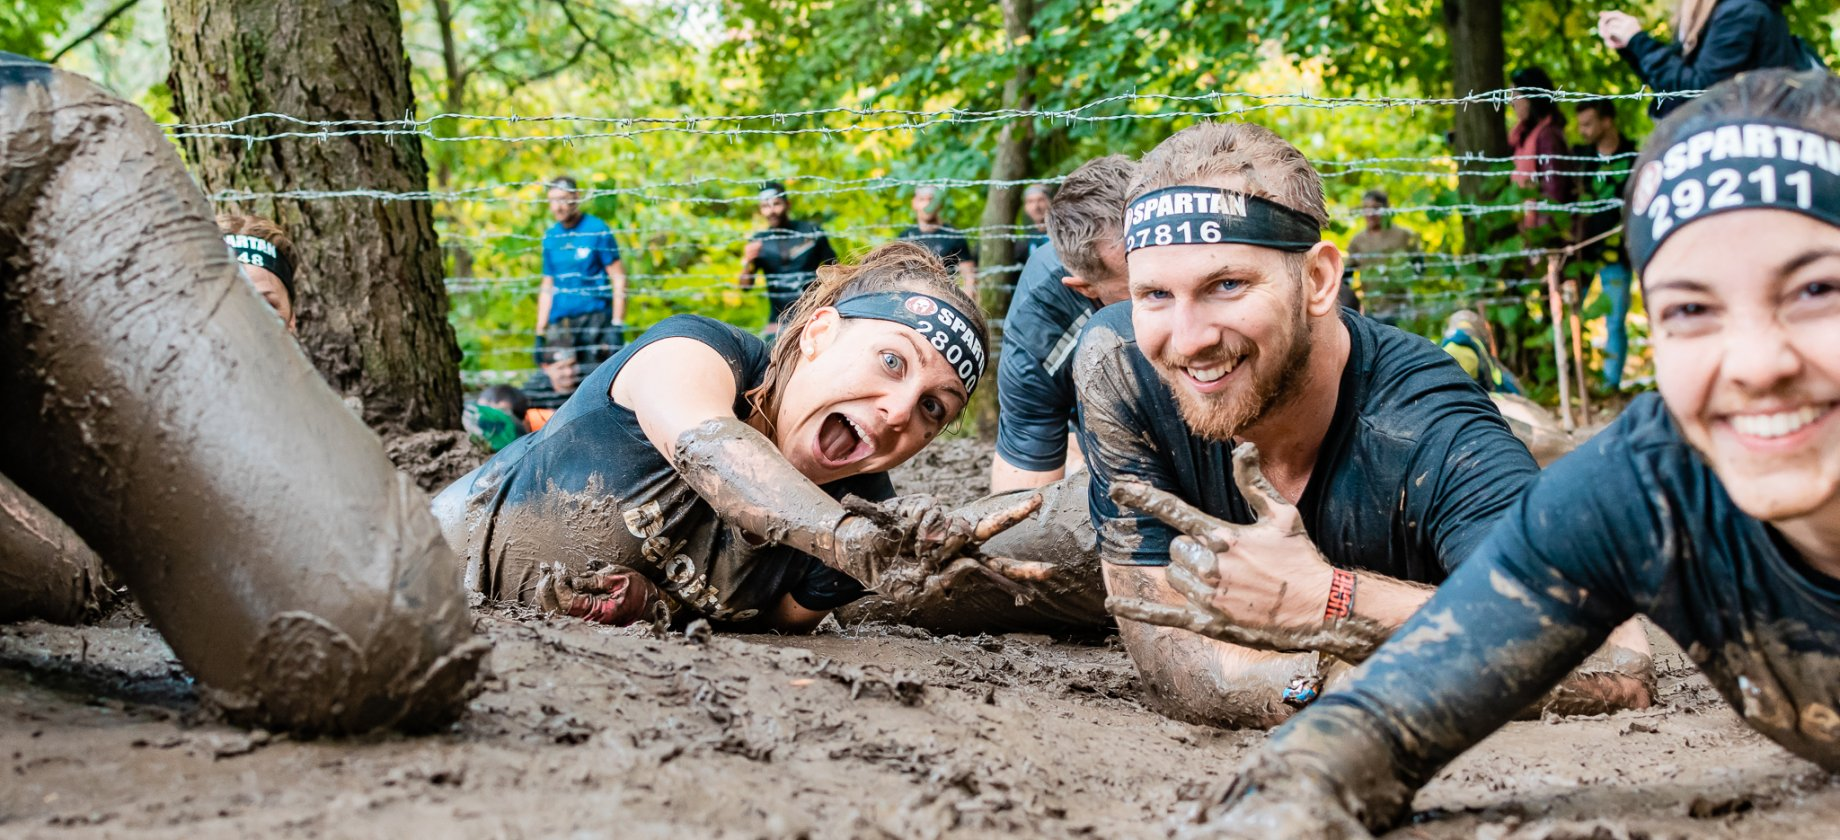 SPARTAN RACE 2021 - FIRST MINUTE